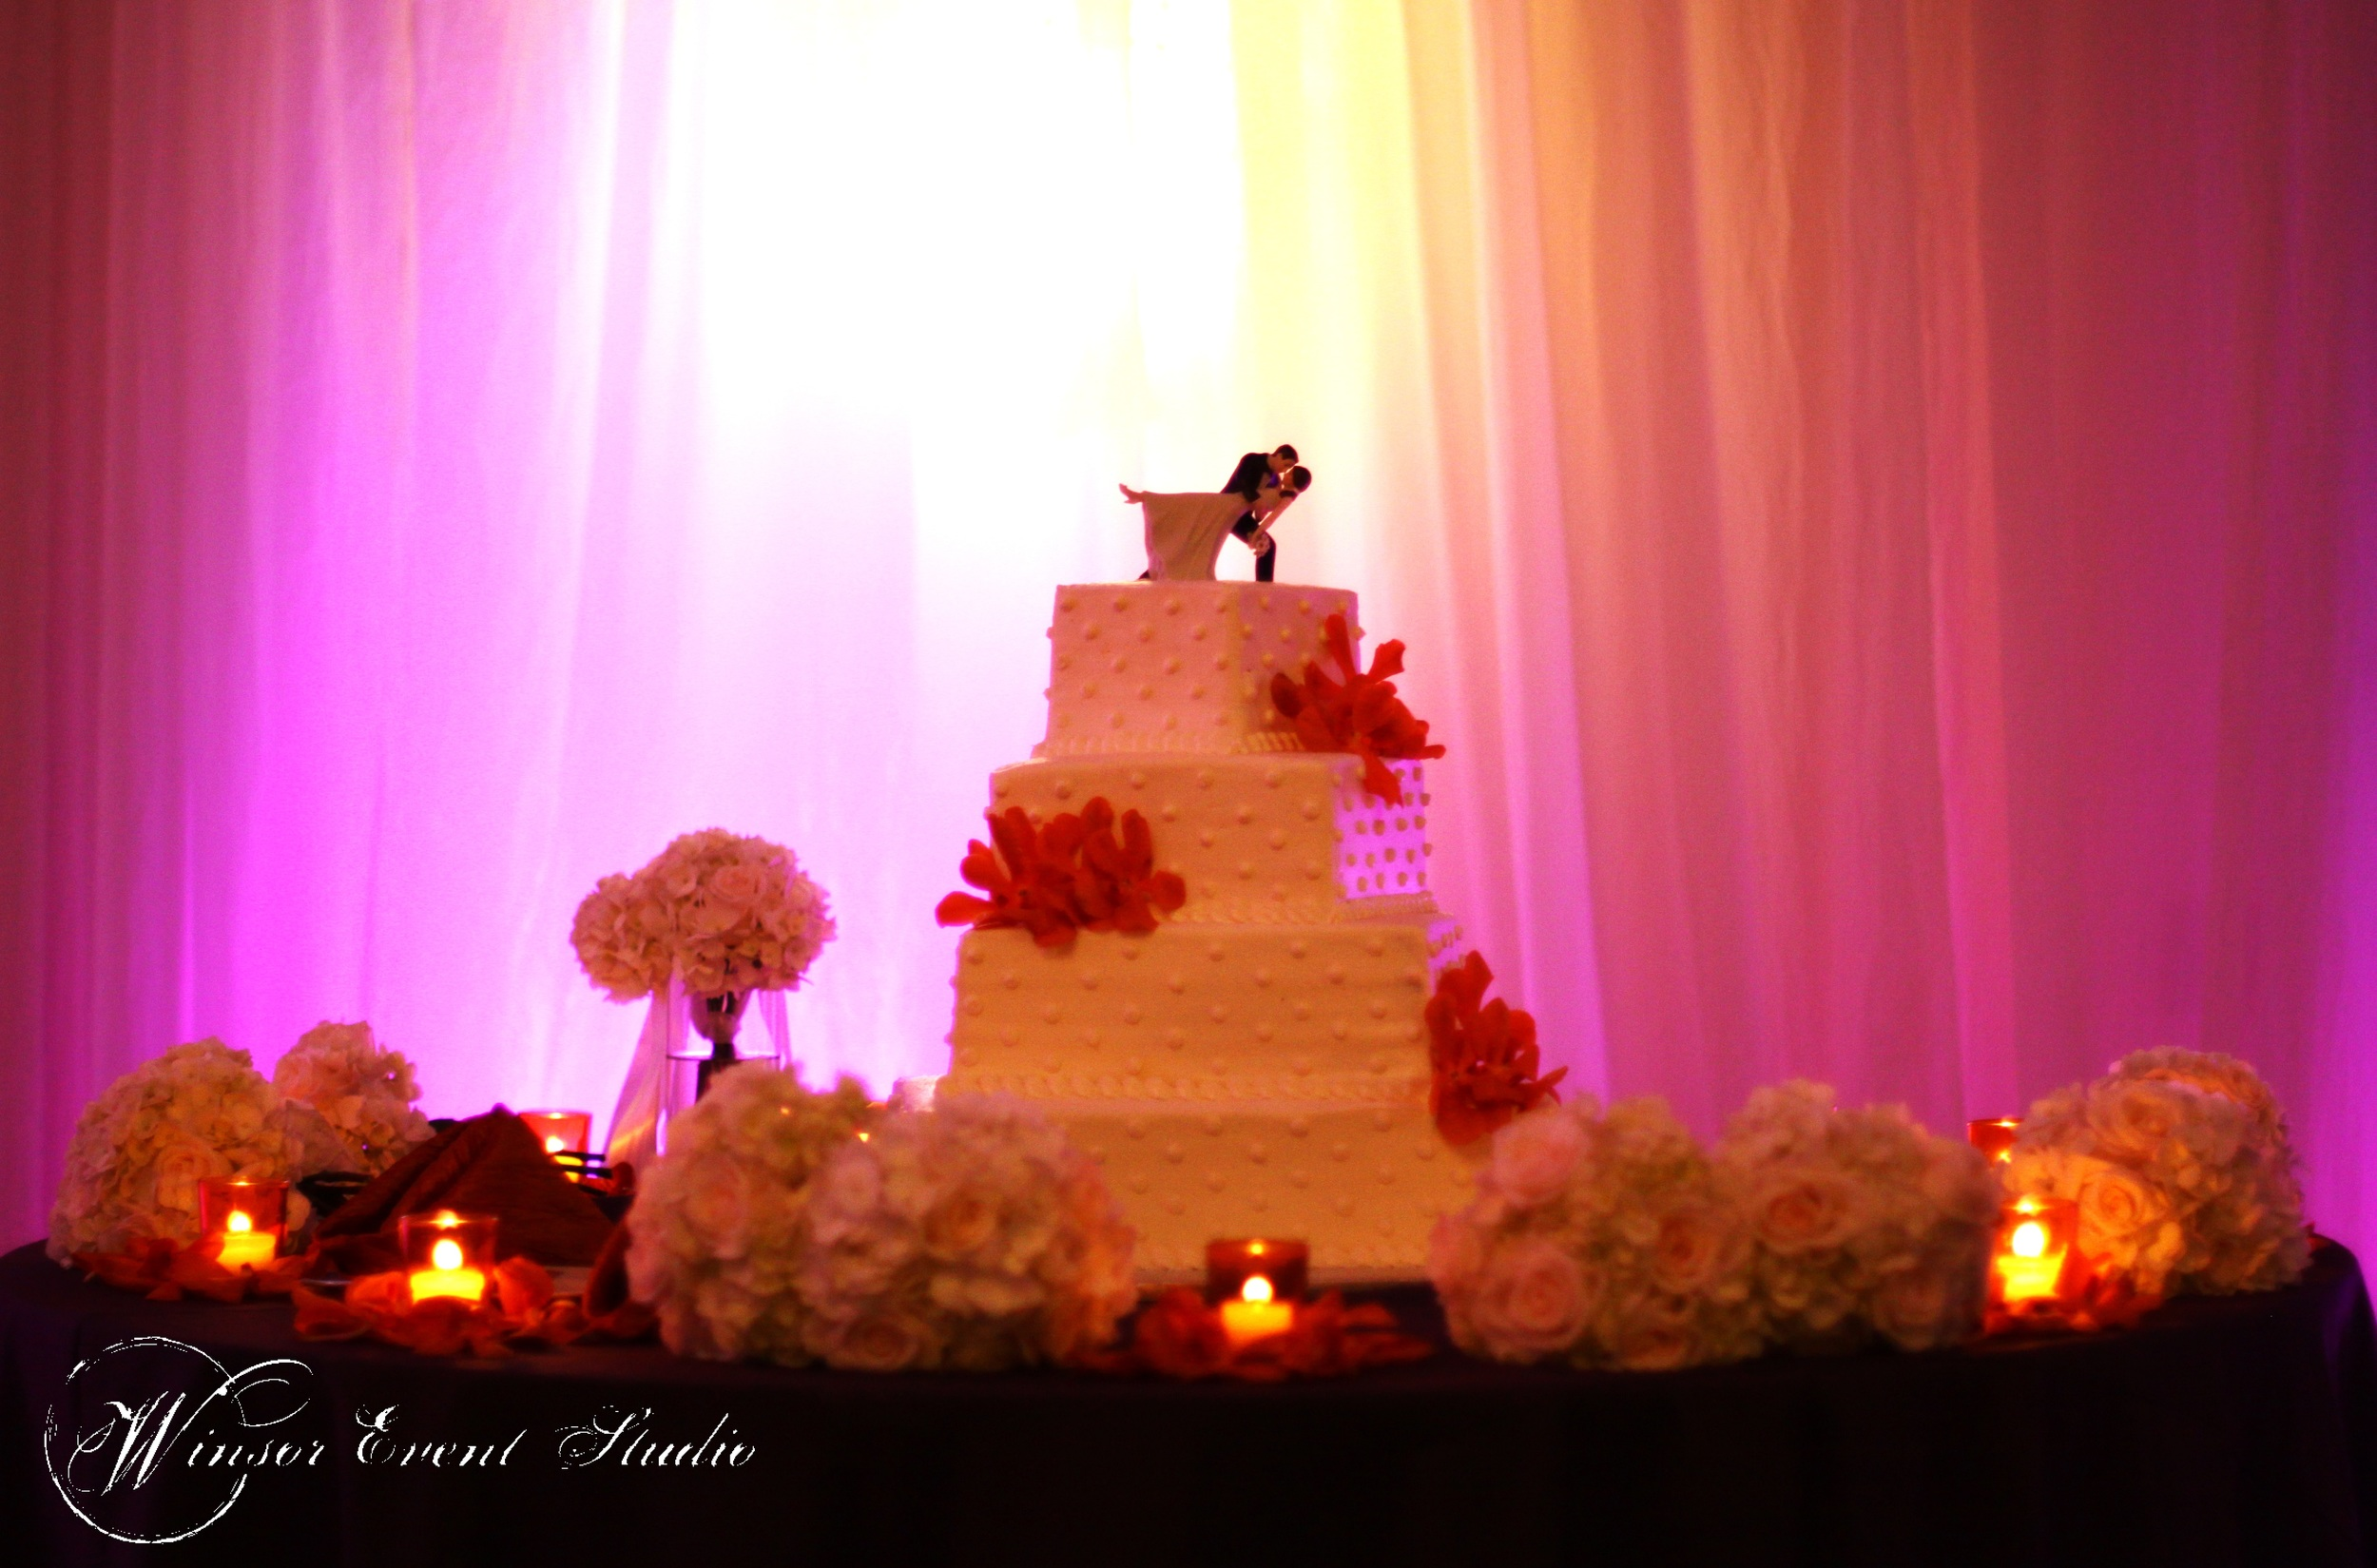 winsor event studio wedding cake